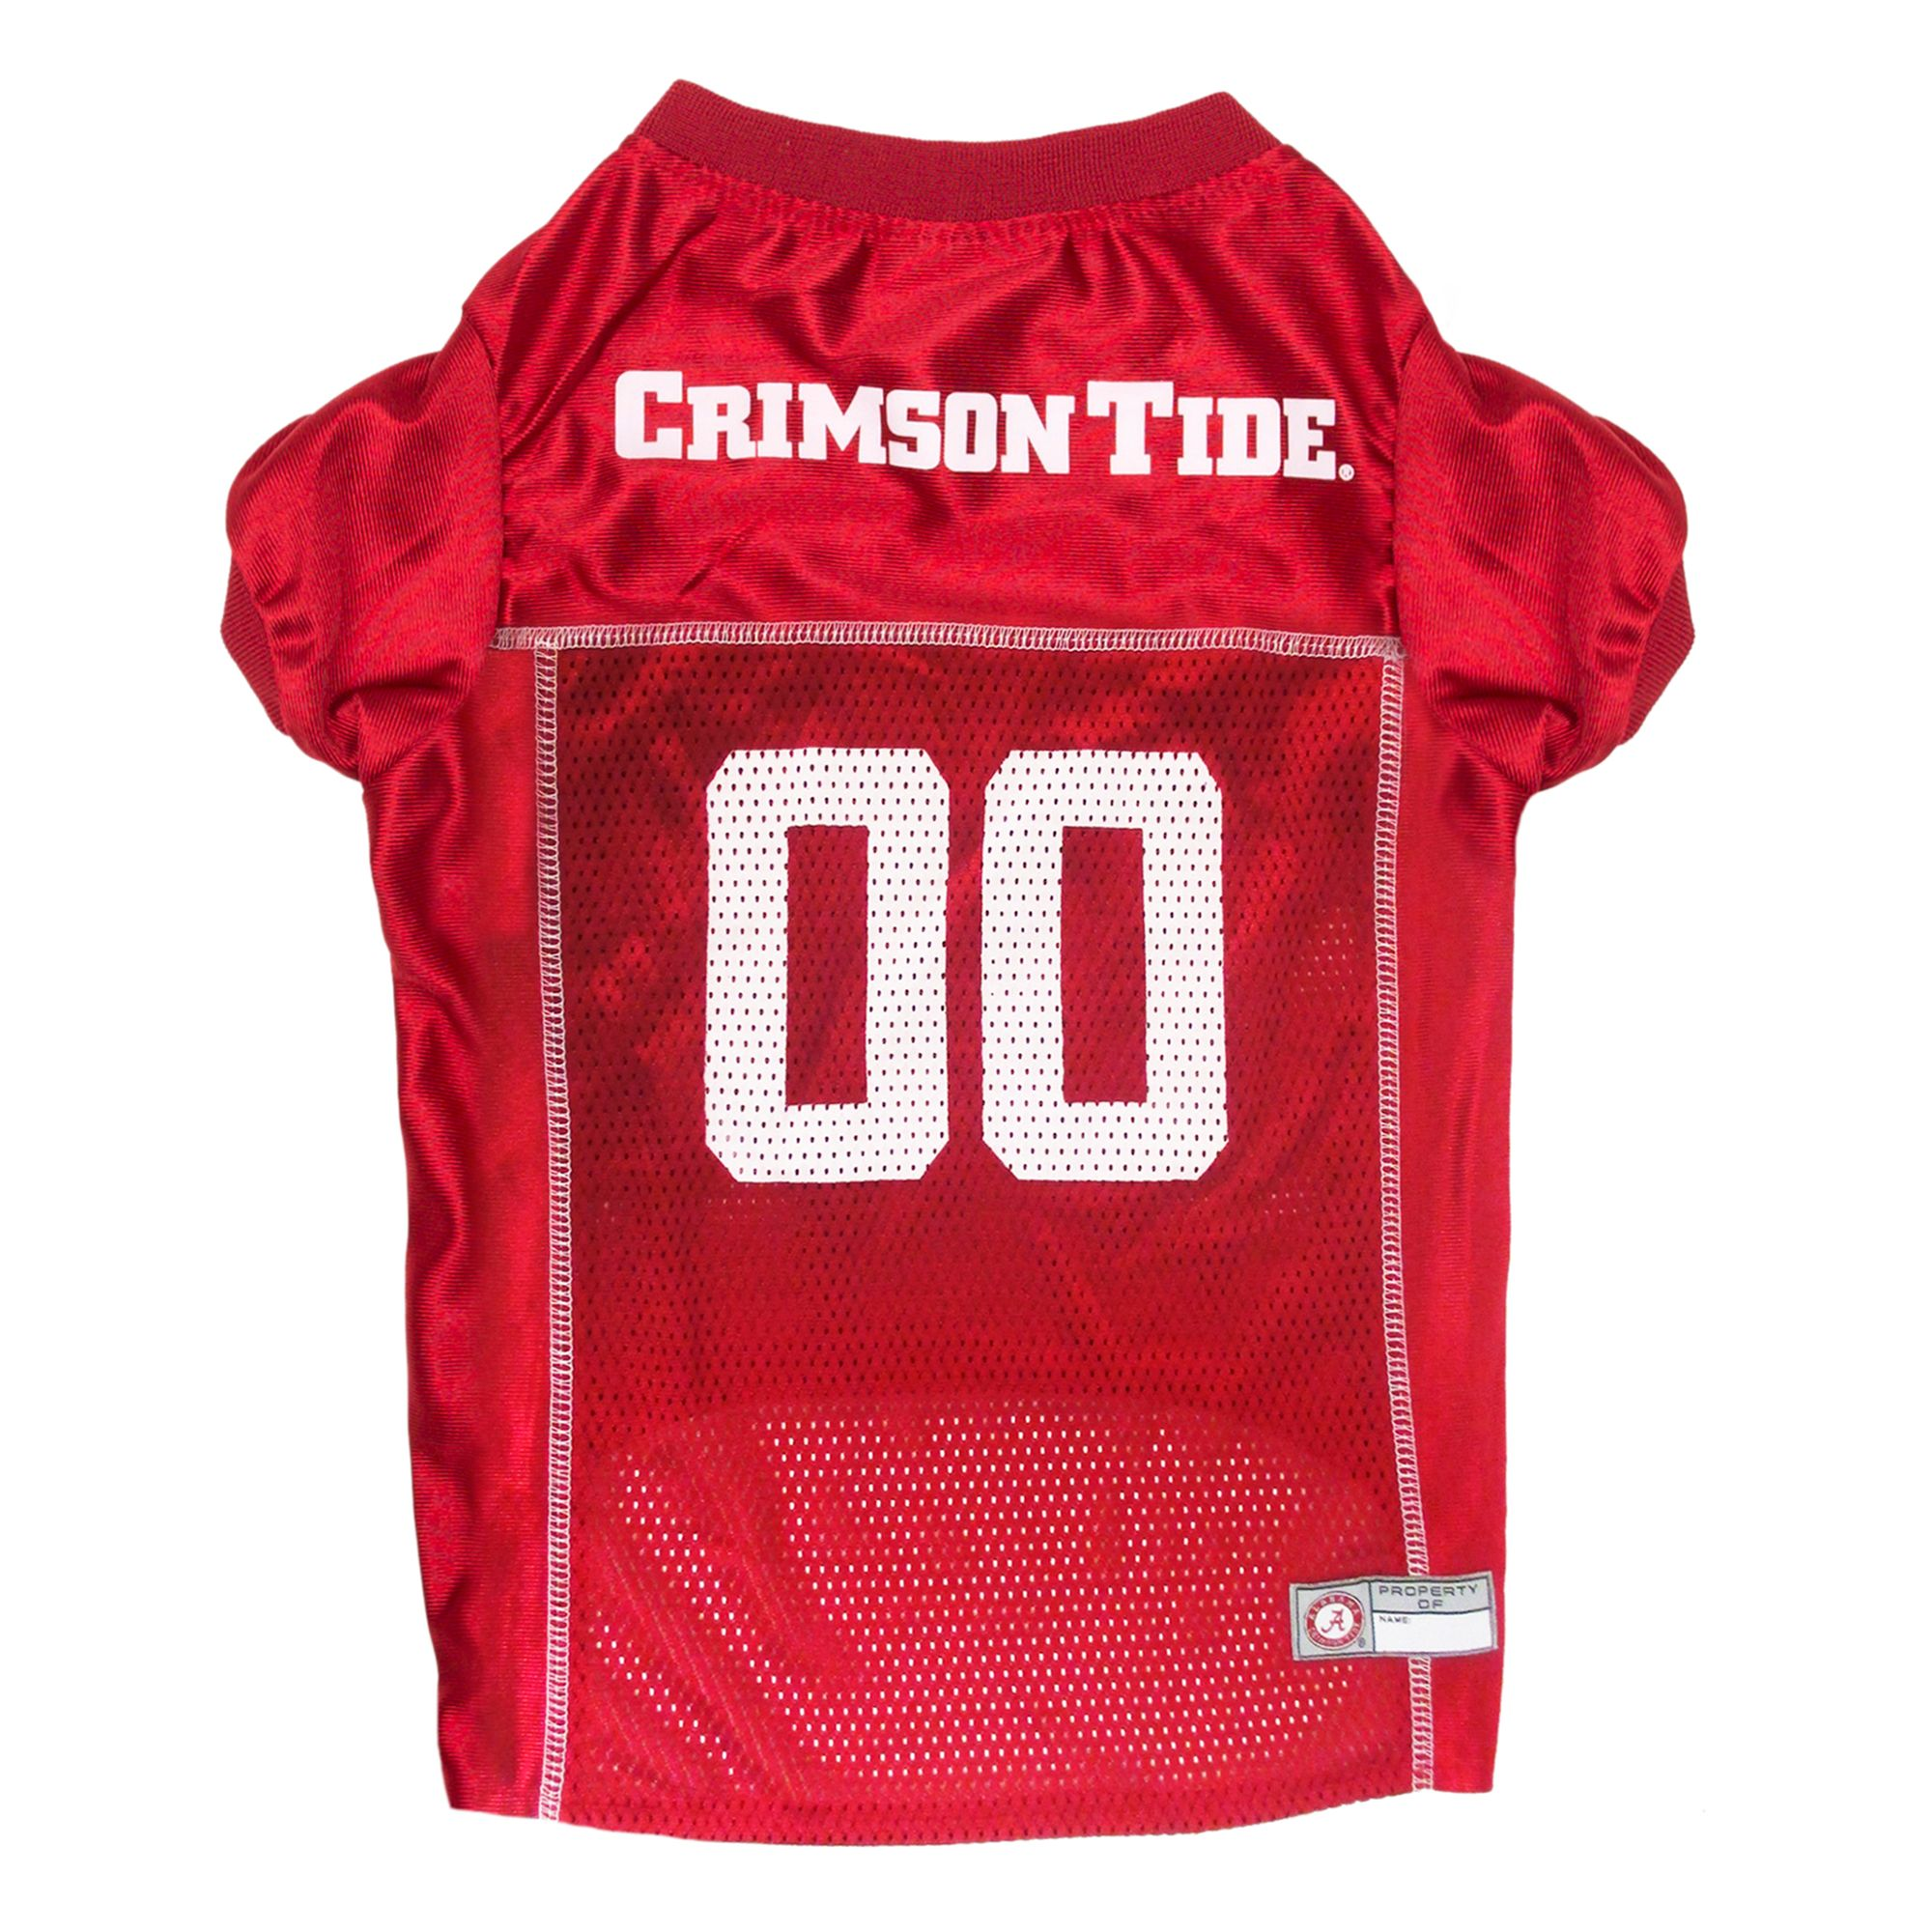 Alabama University Crimson Tide Ncaa Mesh Jersey size: X Large, Pets First 5259258